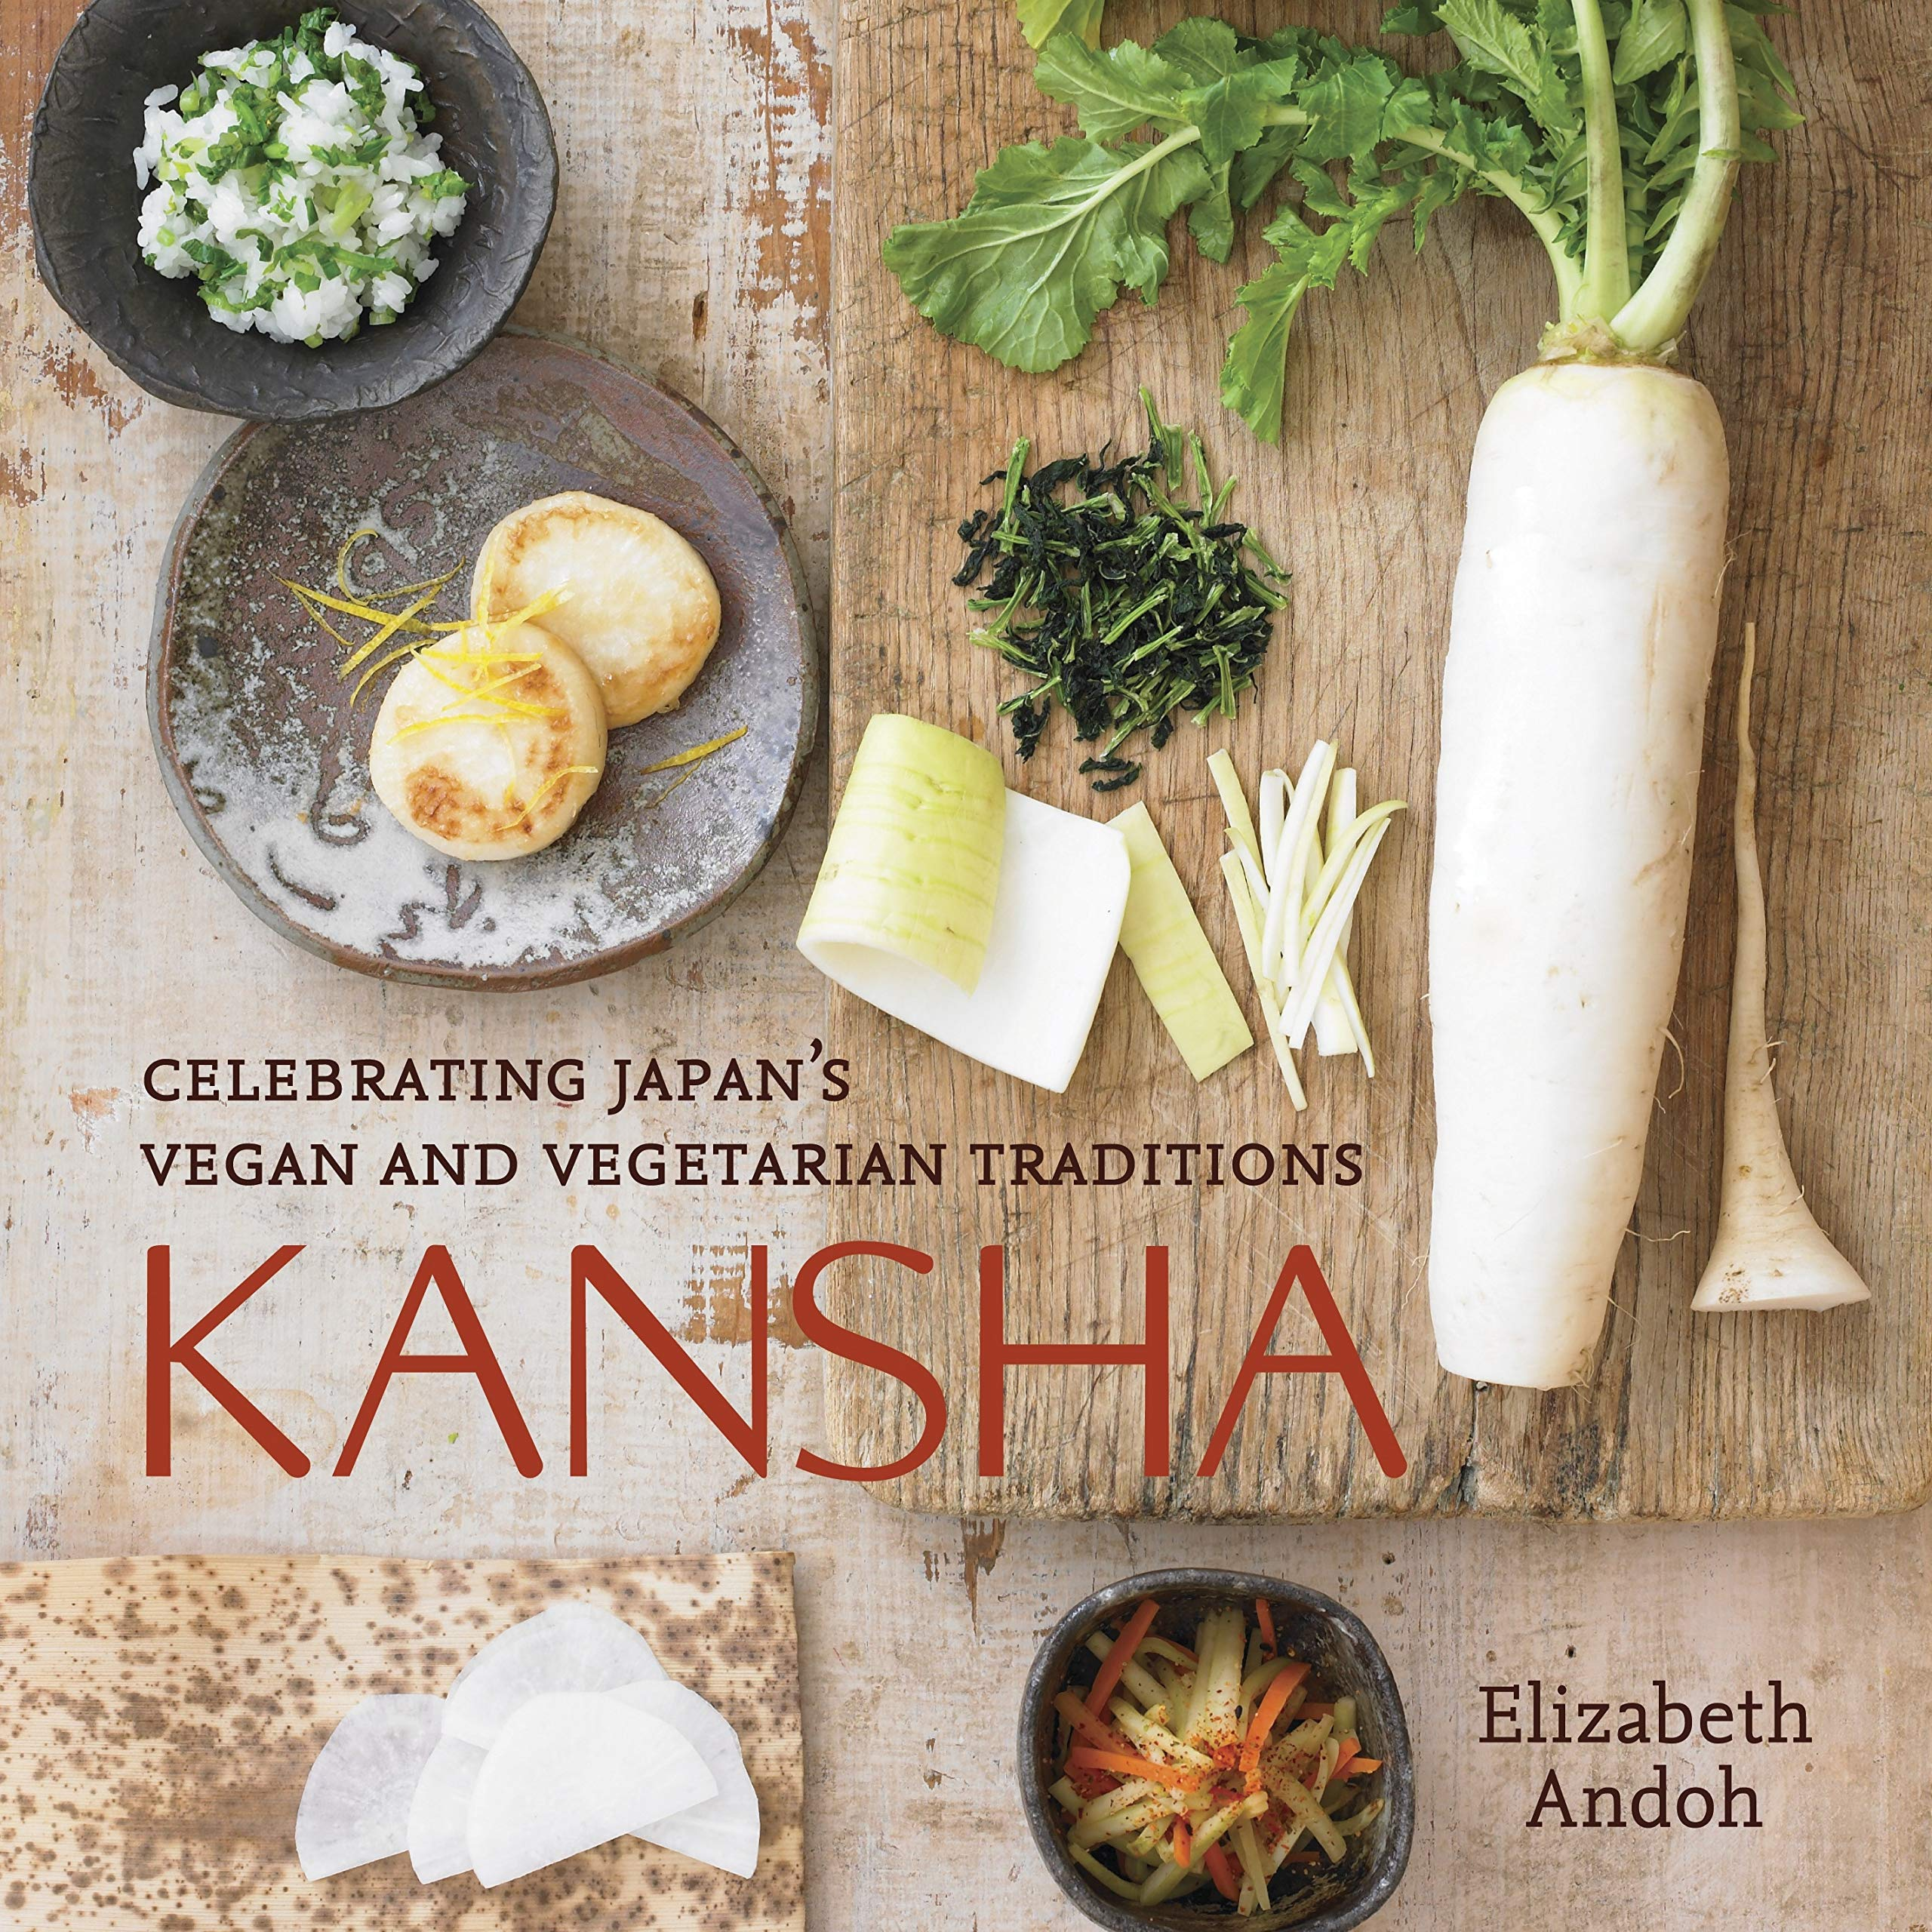 Kansha Celebrating Japan S Vegan And Vegetarian Traditions A Cookbook Andoh Elizabeth 8601406505384 Amazon Com Books